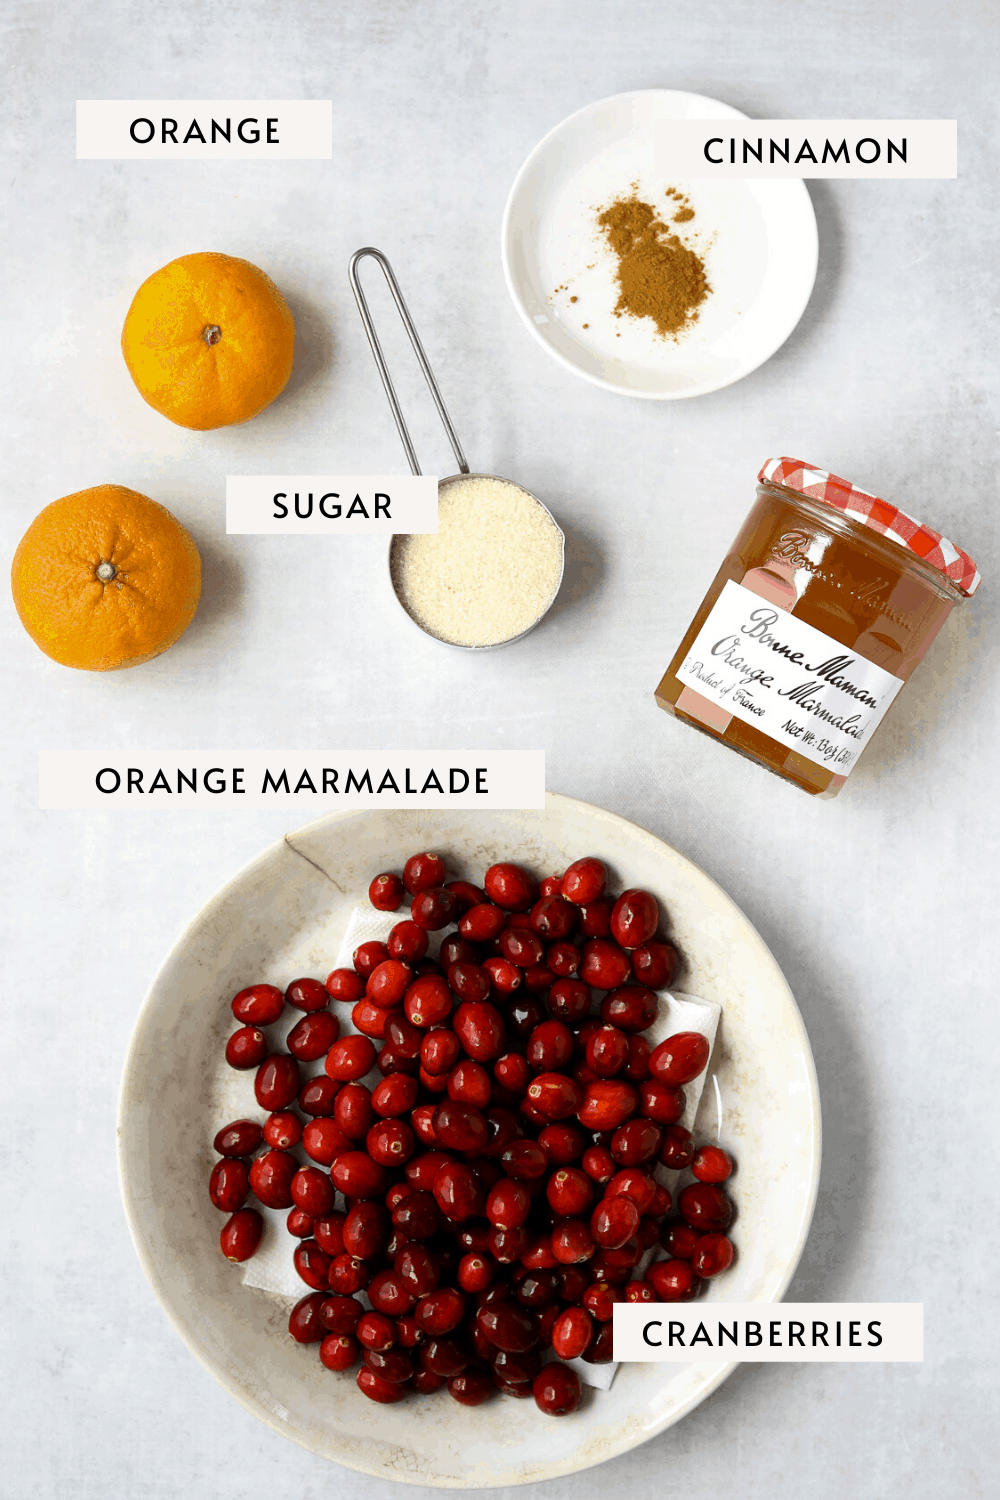 a bowl of fresh cranberries, two small oranges, a pinch of cinnamon, a jar of orange marmalade